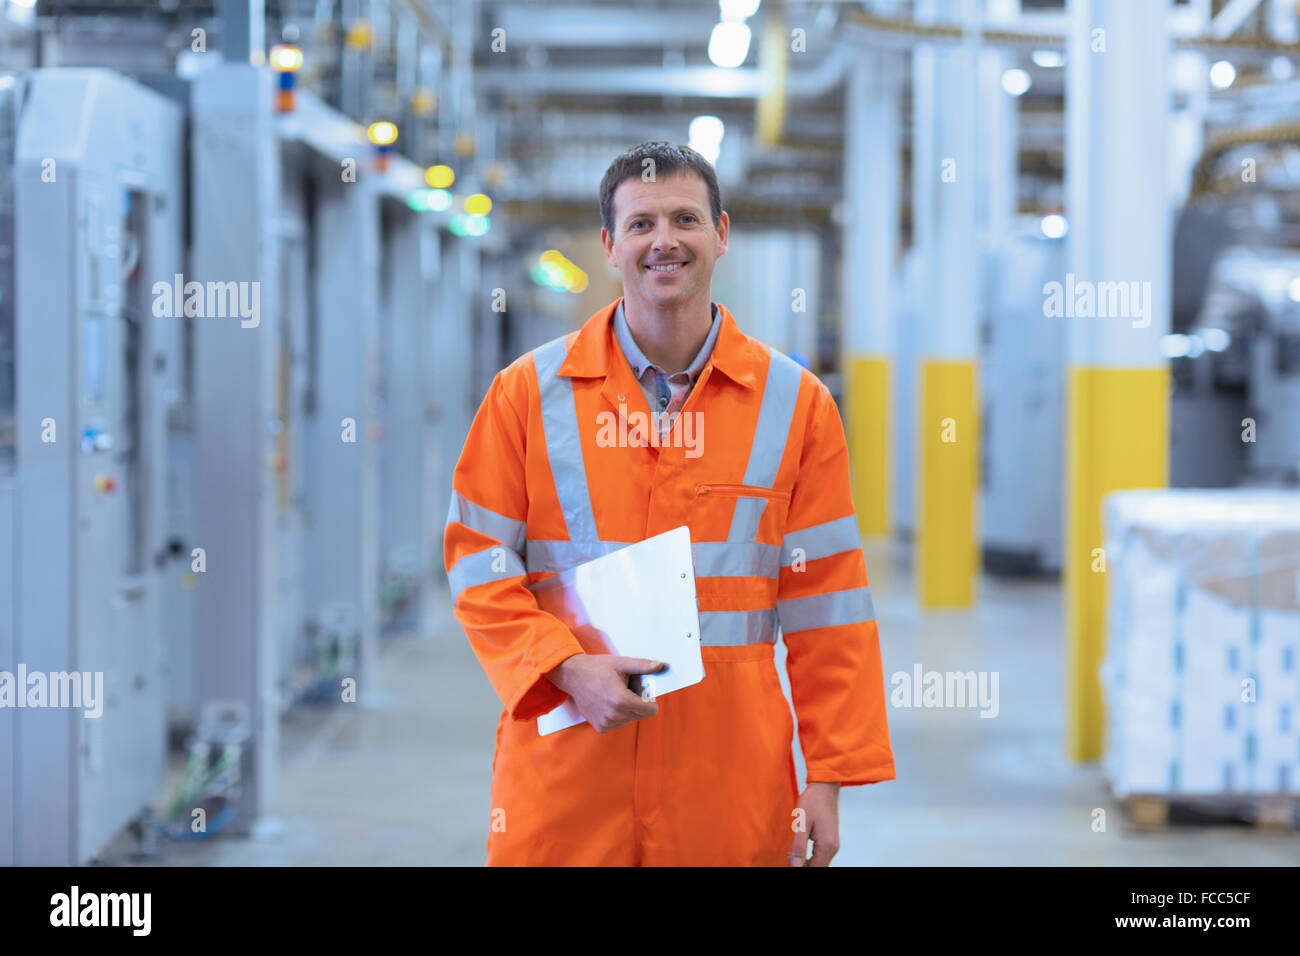 Portrait confident worker in reflective clothing with clipboard in factory - Stock Image